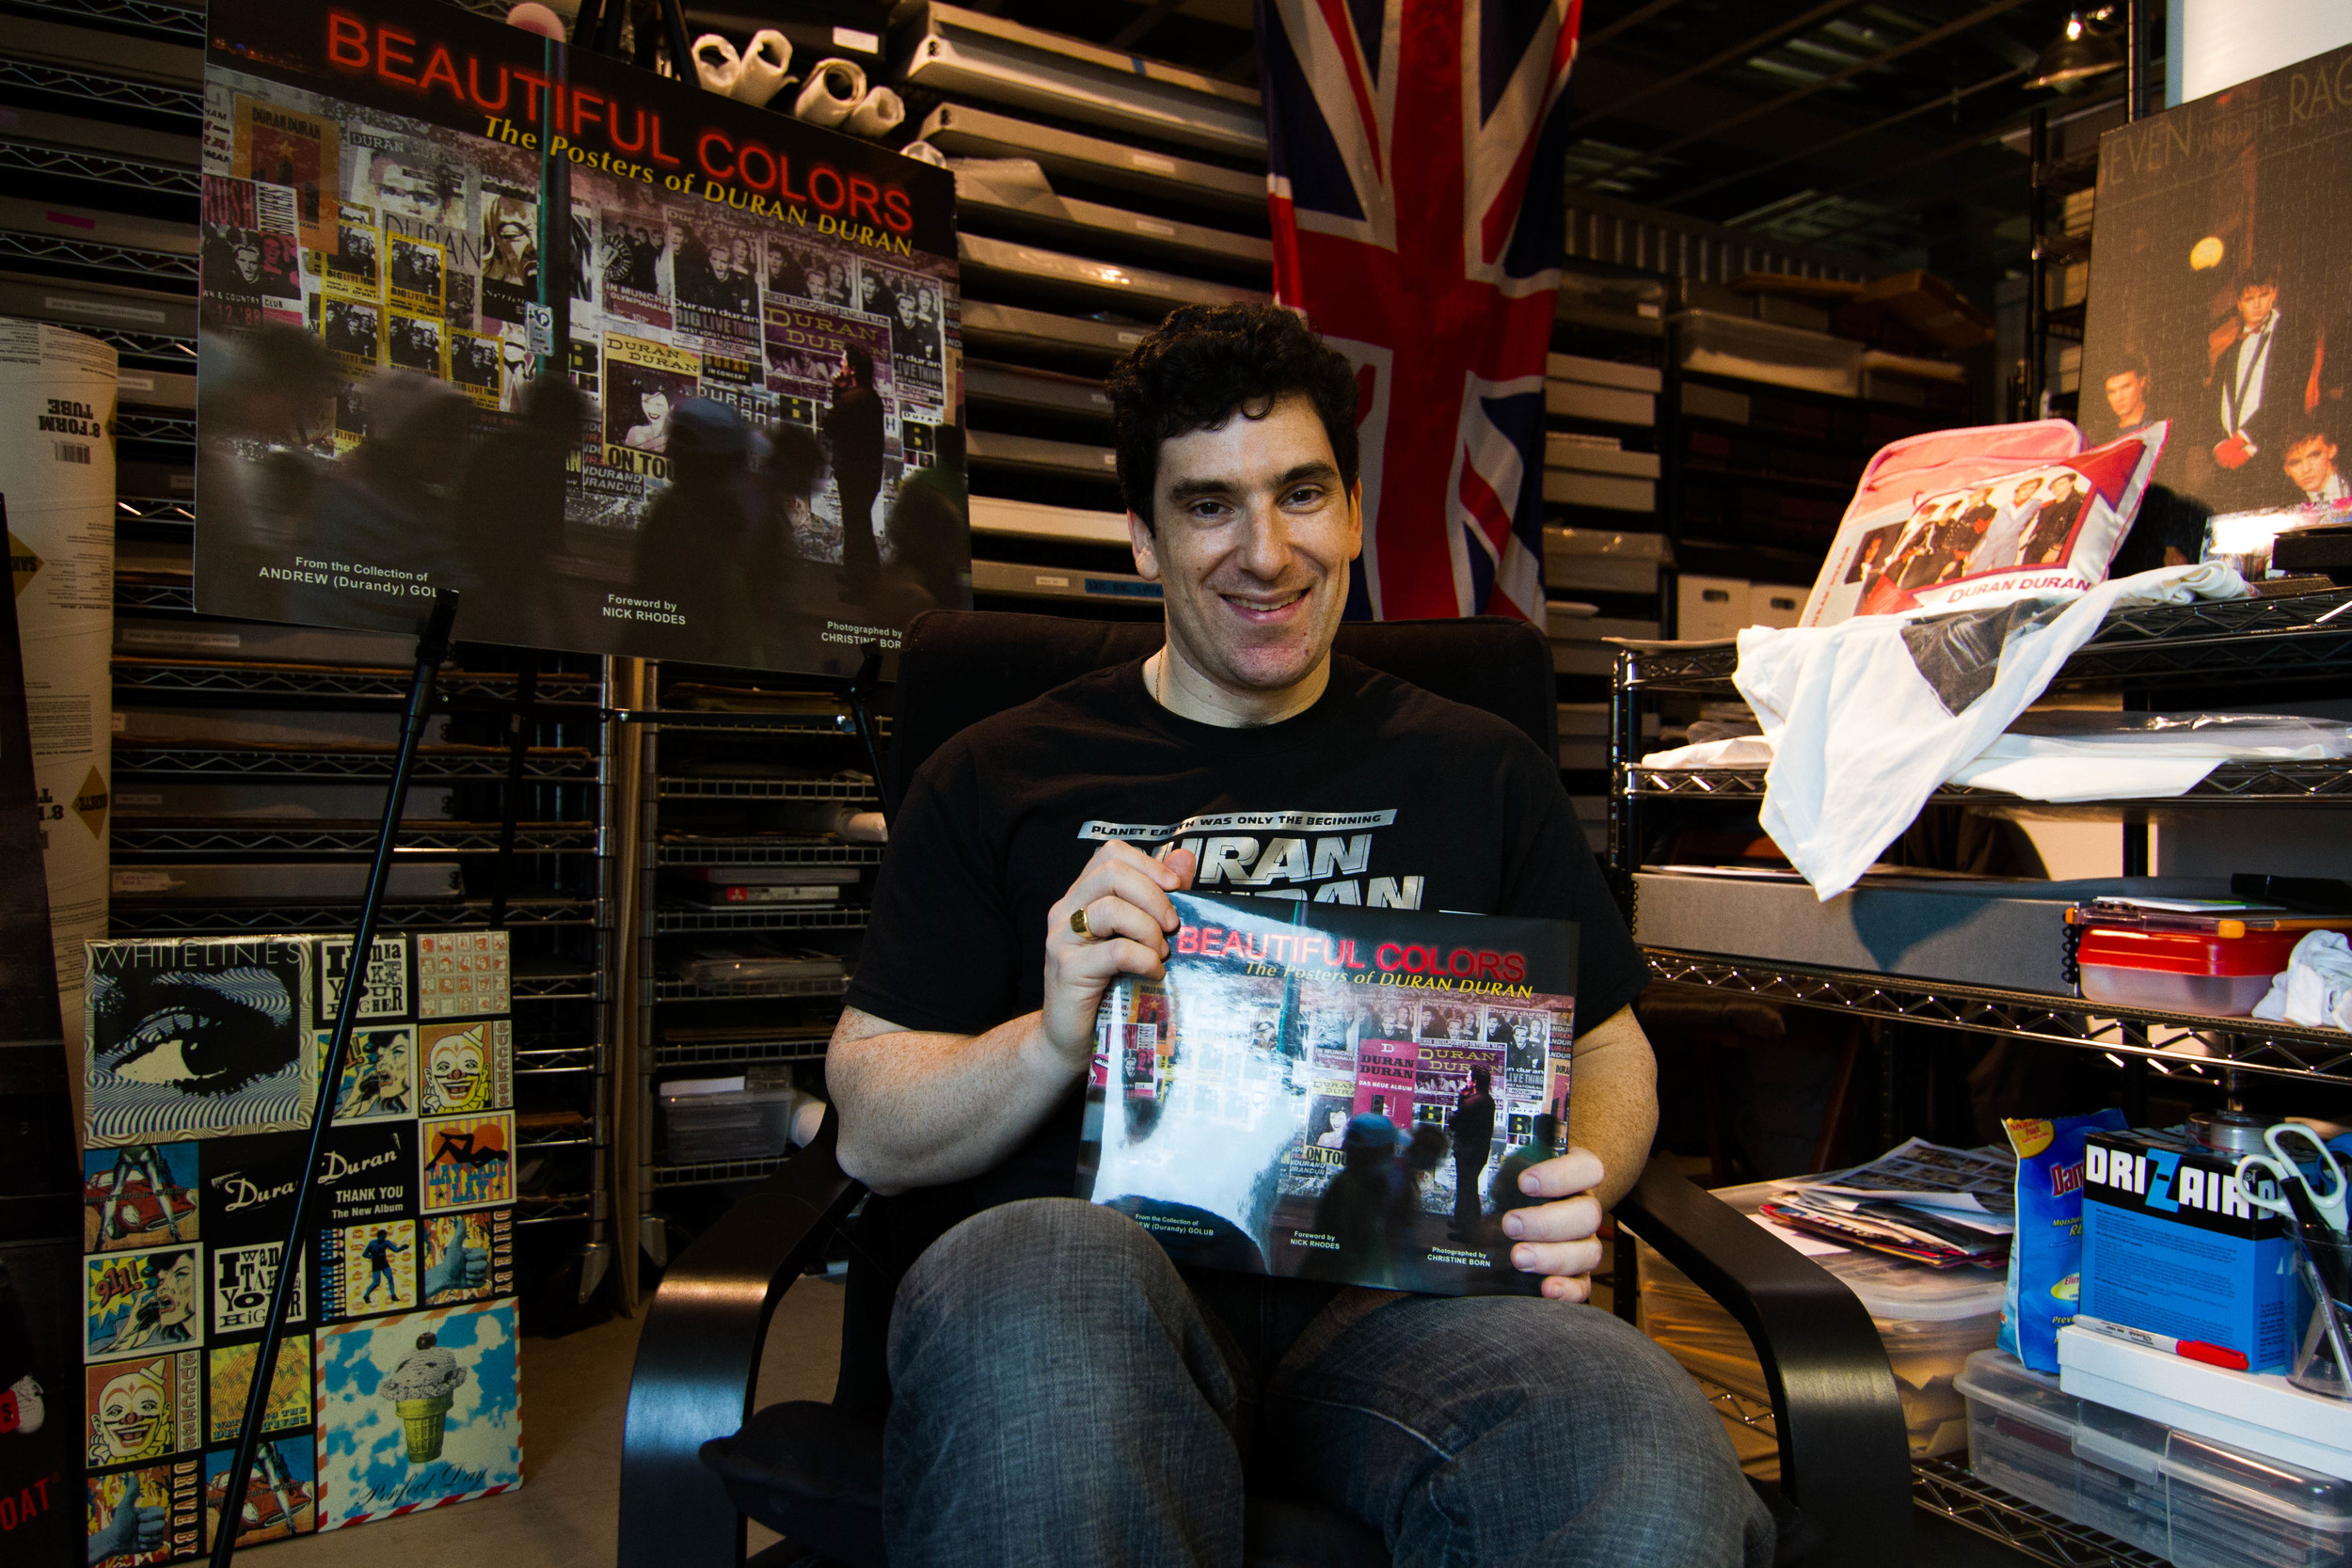 """Andrew """"Durandy"""" Golub, 42, poses with his newly written book """"Beautiful Colors"""" on Saturday afternoon, April 5, 2014. The book is comprised of a collection of Duran Duran's posters throughout their career. Golub has become a well-known archivist of Duran Duran memorabilia. He houses his in a storage unit in Bellevue, Wash."""